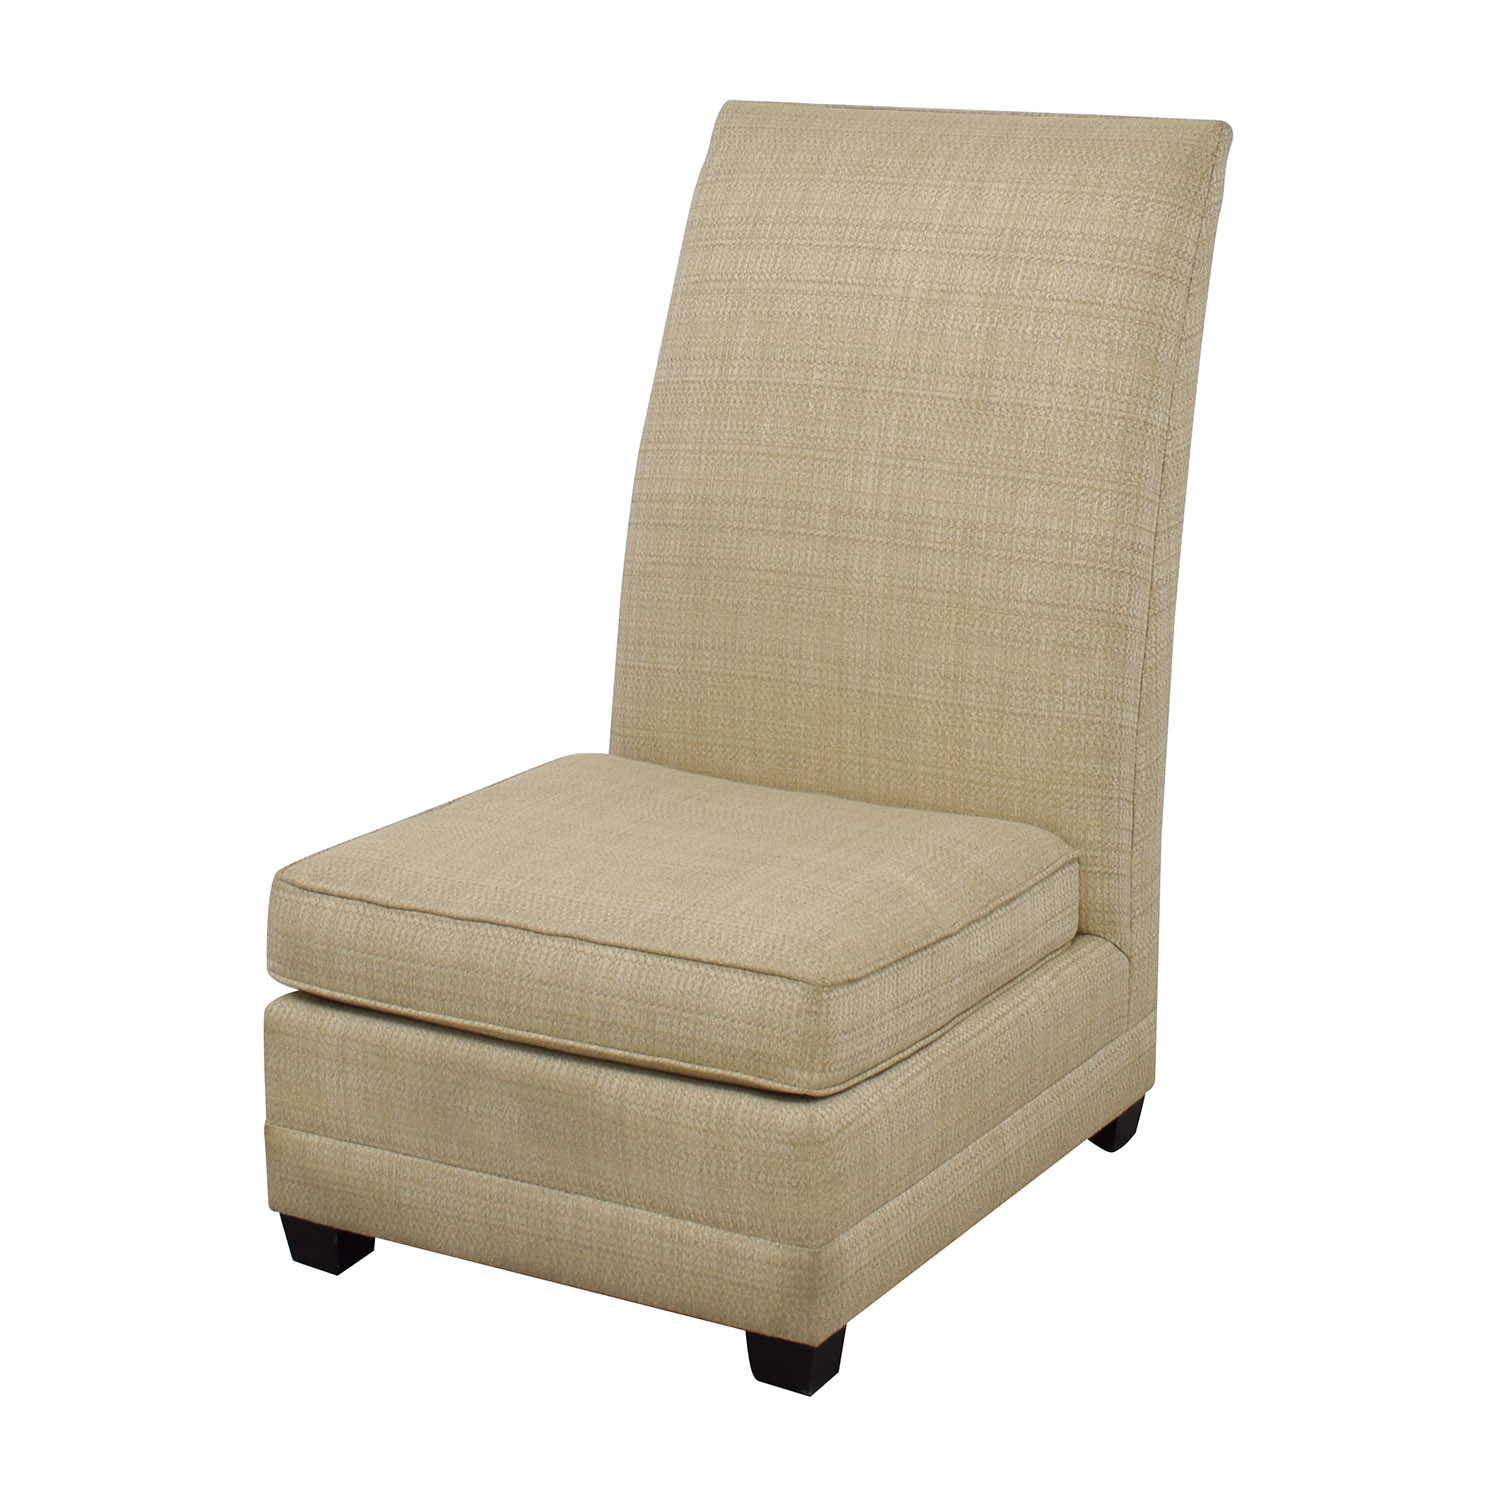 Cream Accent Chair 90 Off Bernhardt Bernhardt Beaumont Cream Accent Chair